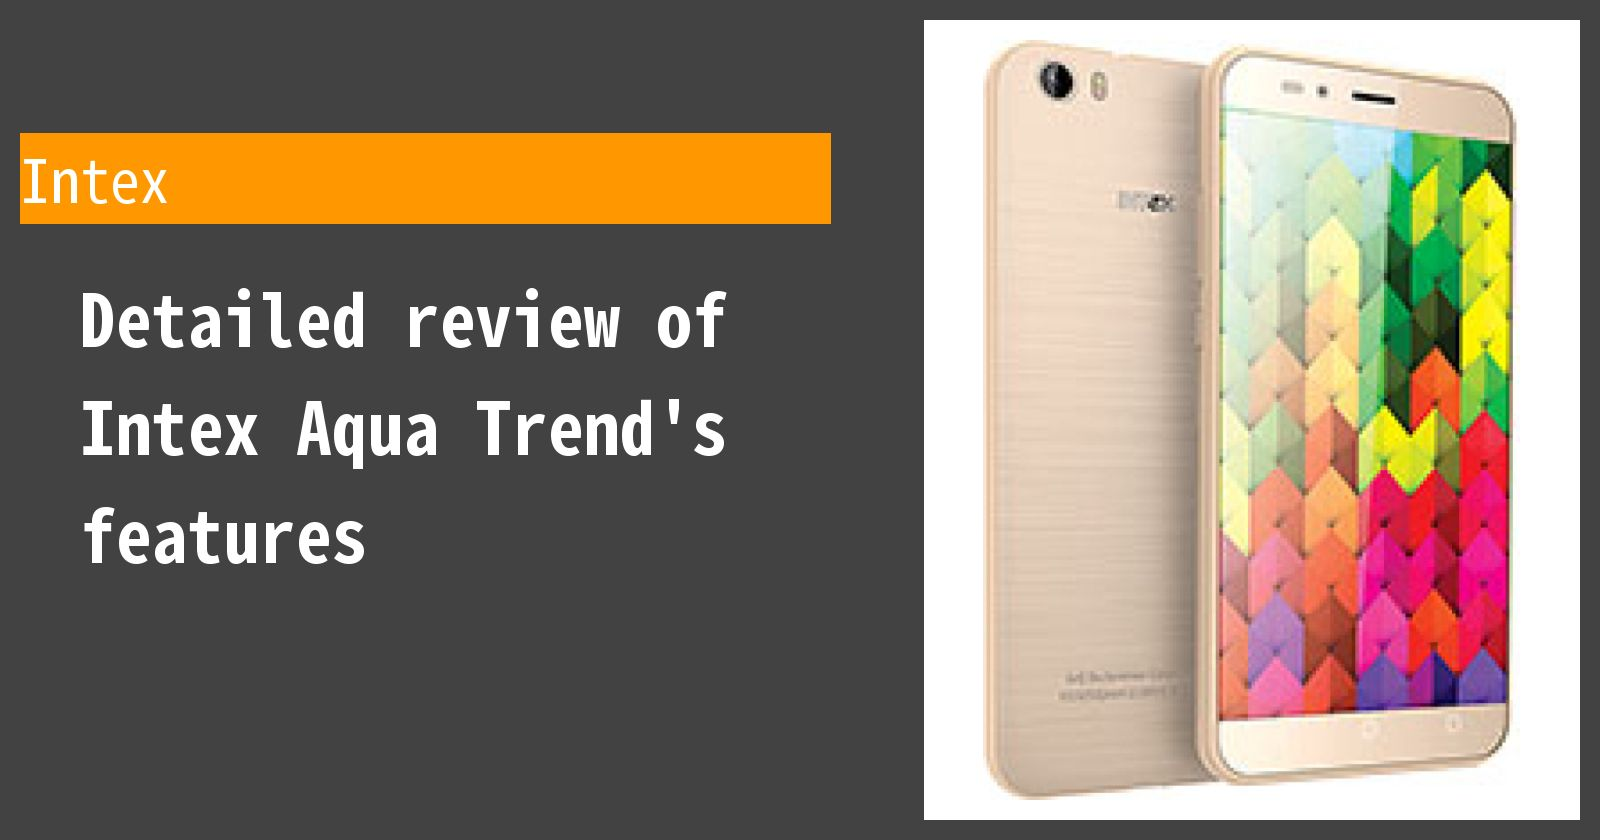 Detailed review of Intex Aqua Trend's features